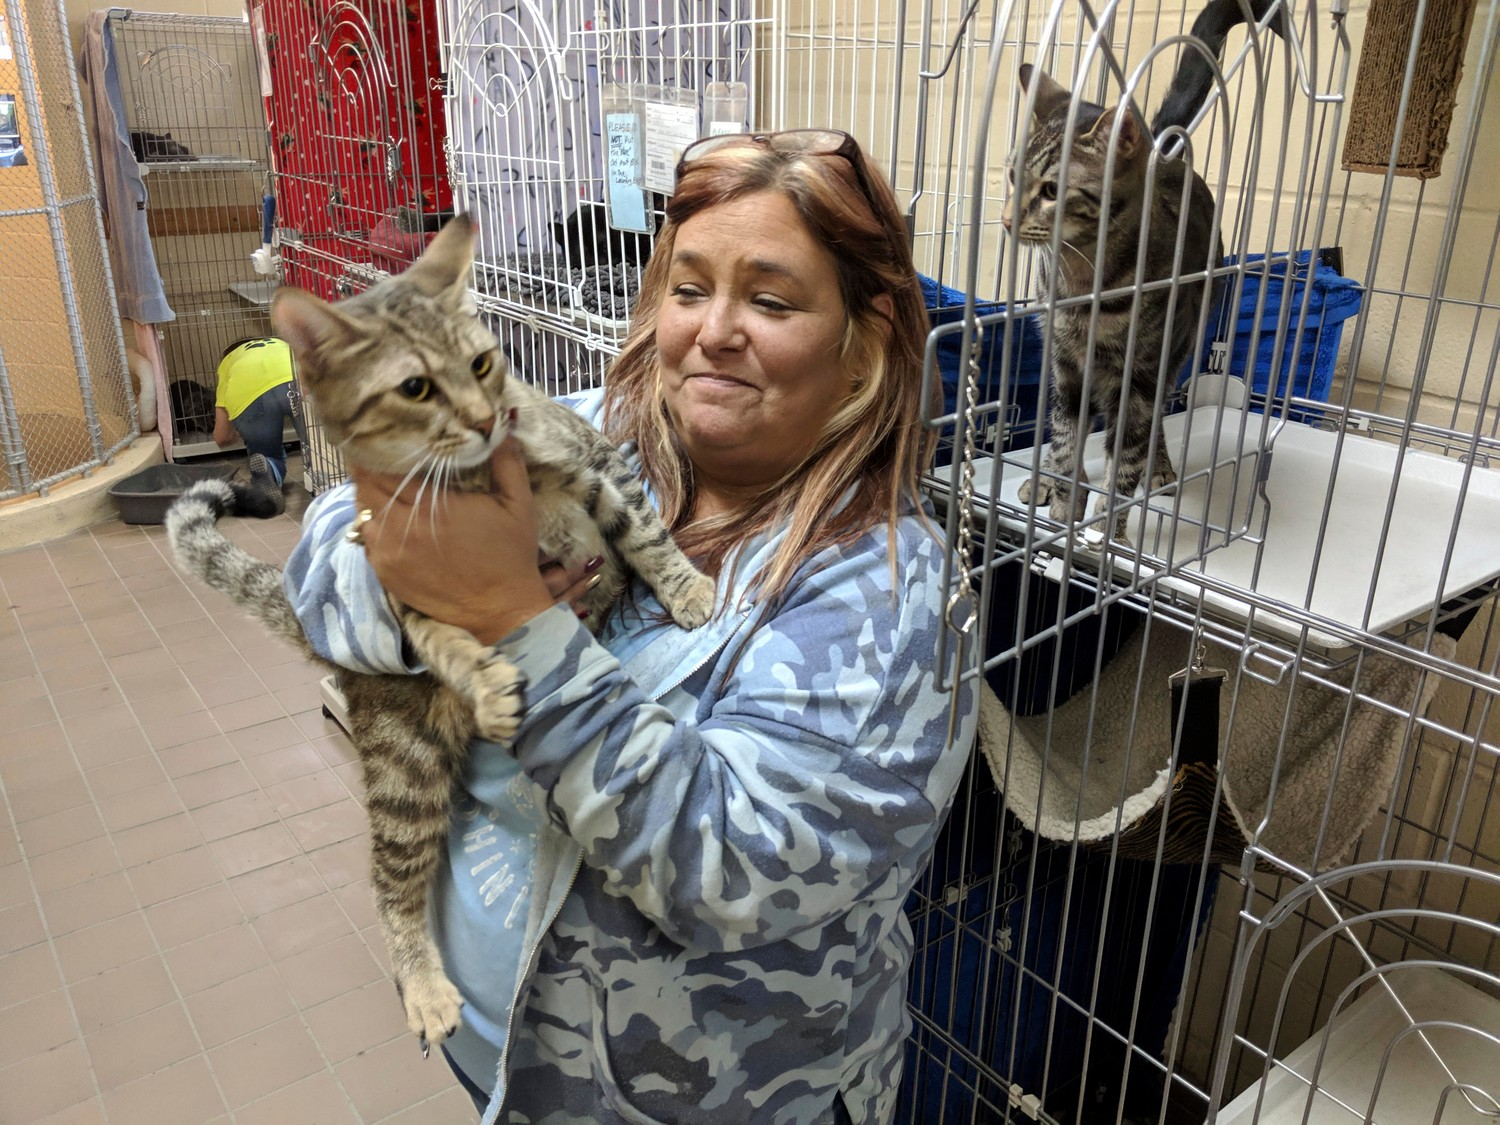 Last Hope Animal Rescue board member Doreen Simonson has worked with cats at the facility for two and a half years.